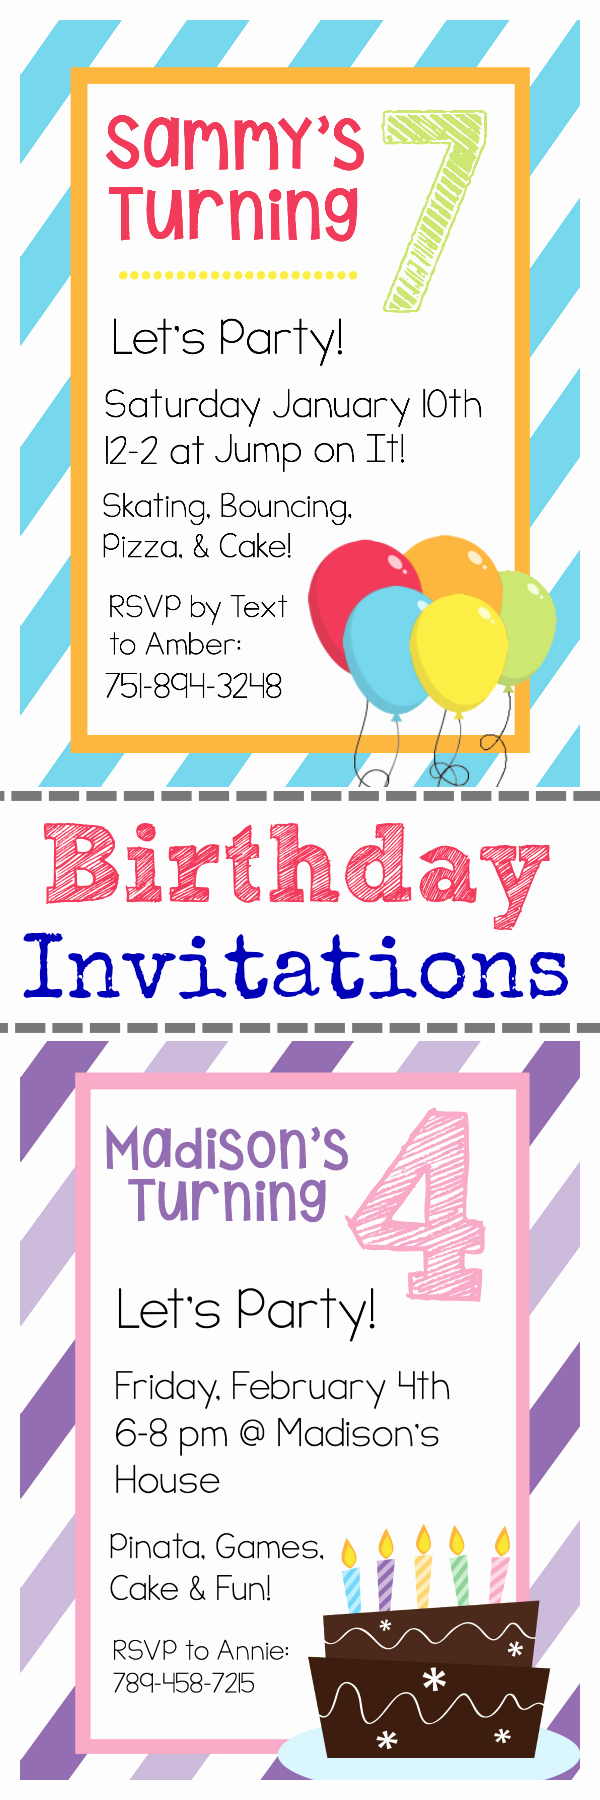 Free Invitation Template Printable Lovely Free Printable Birthday Invitation Templates